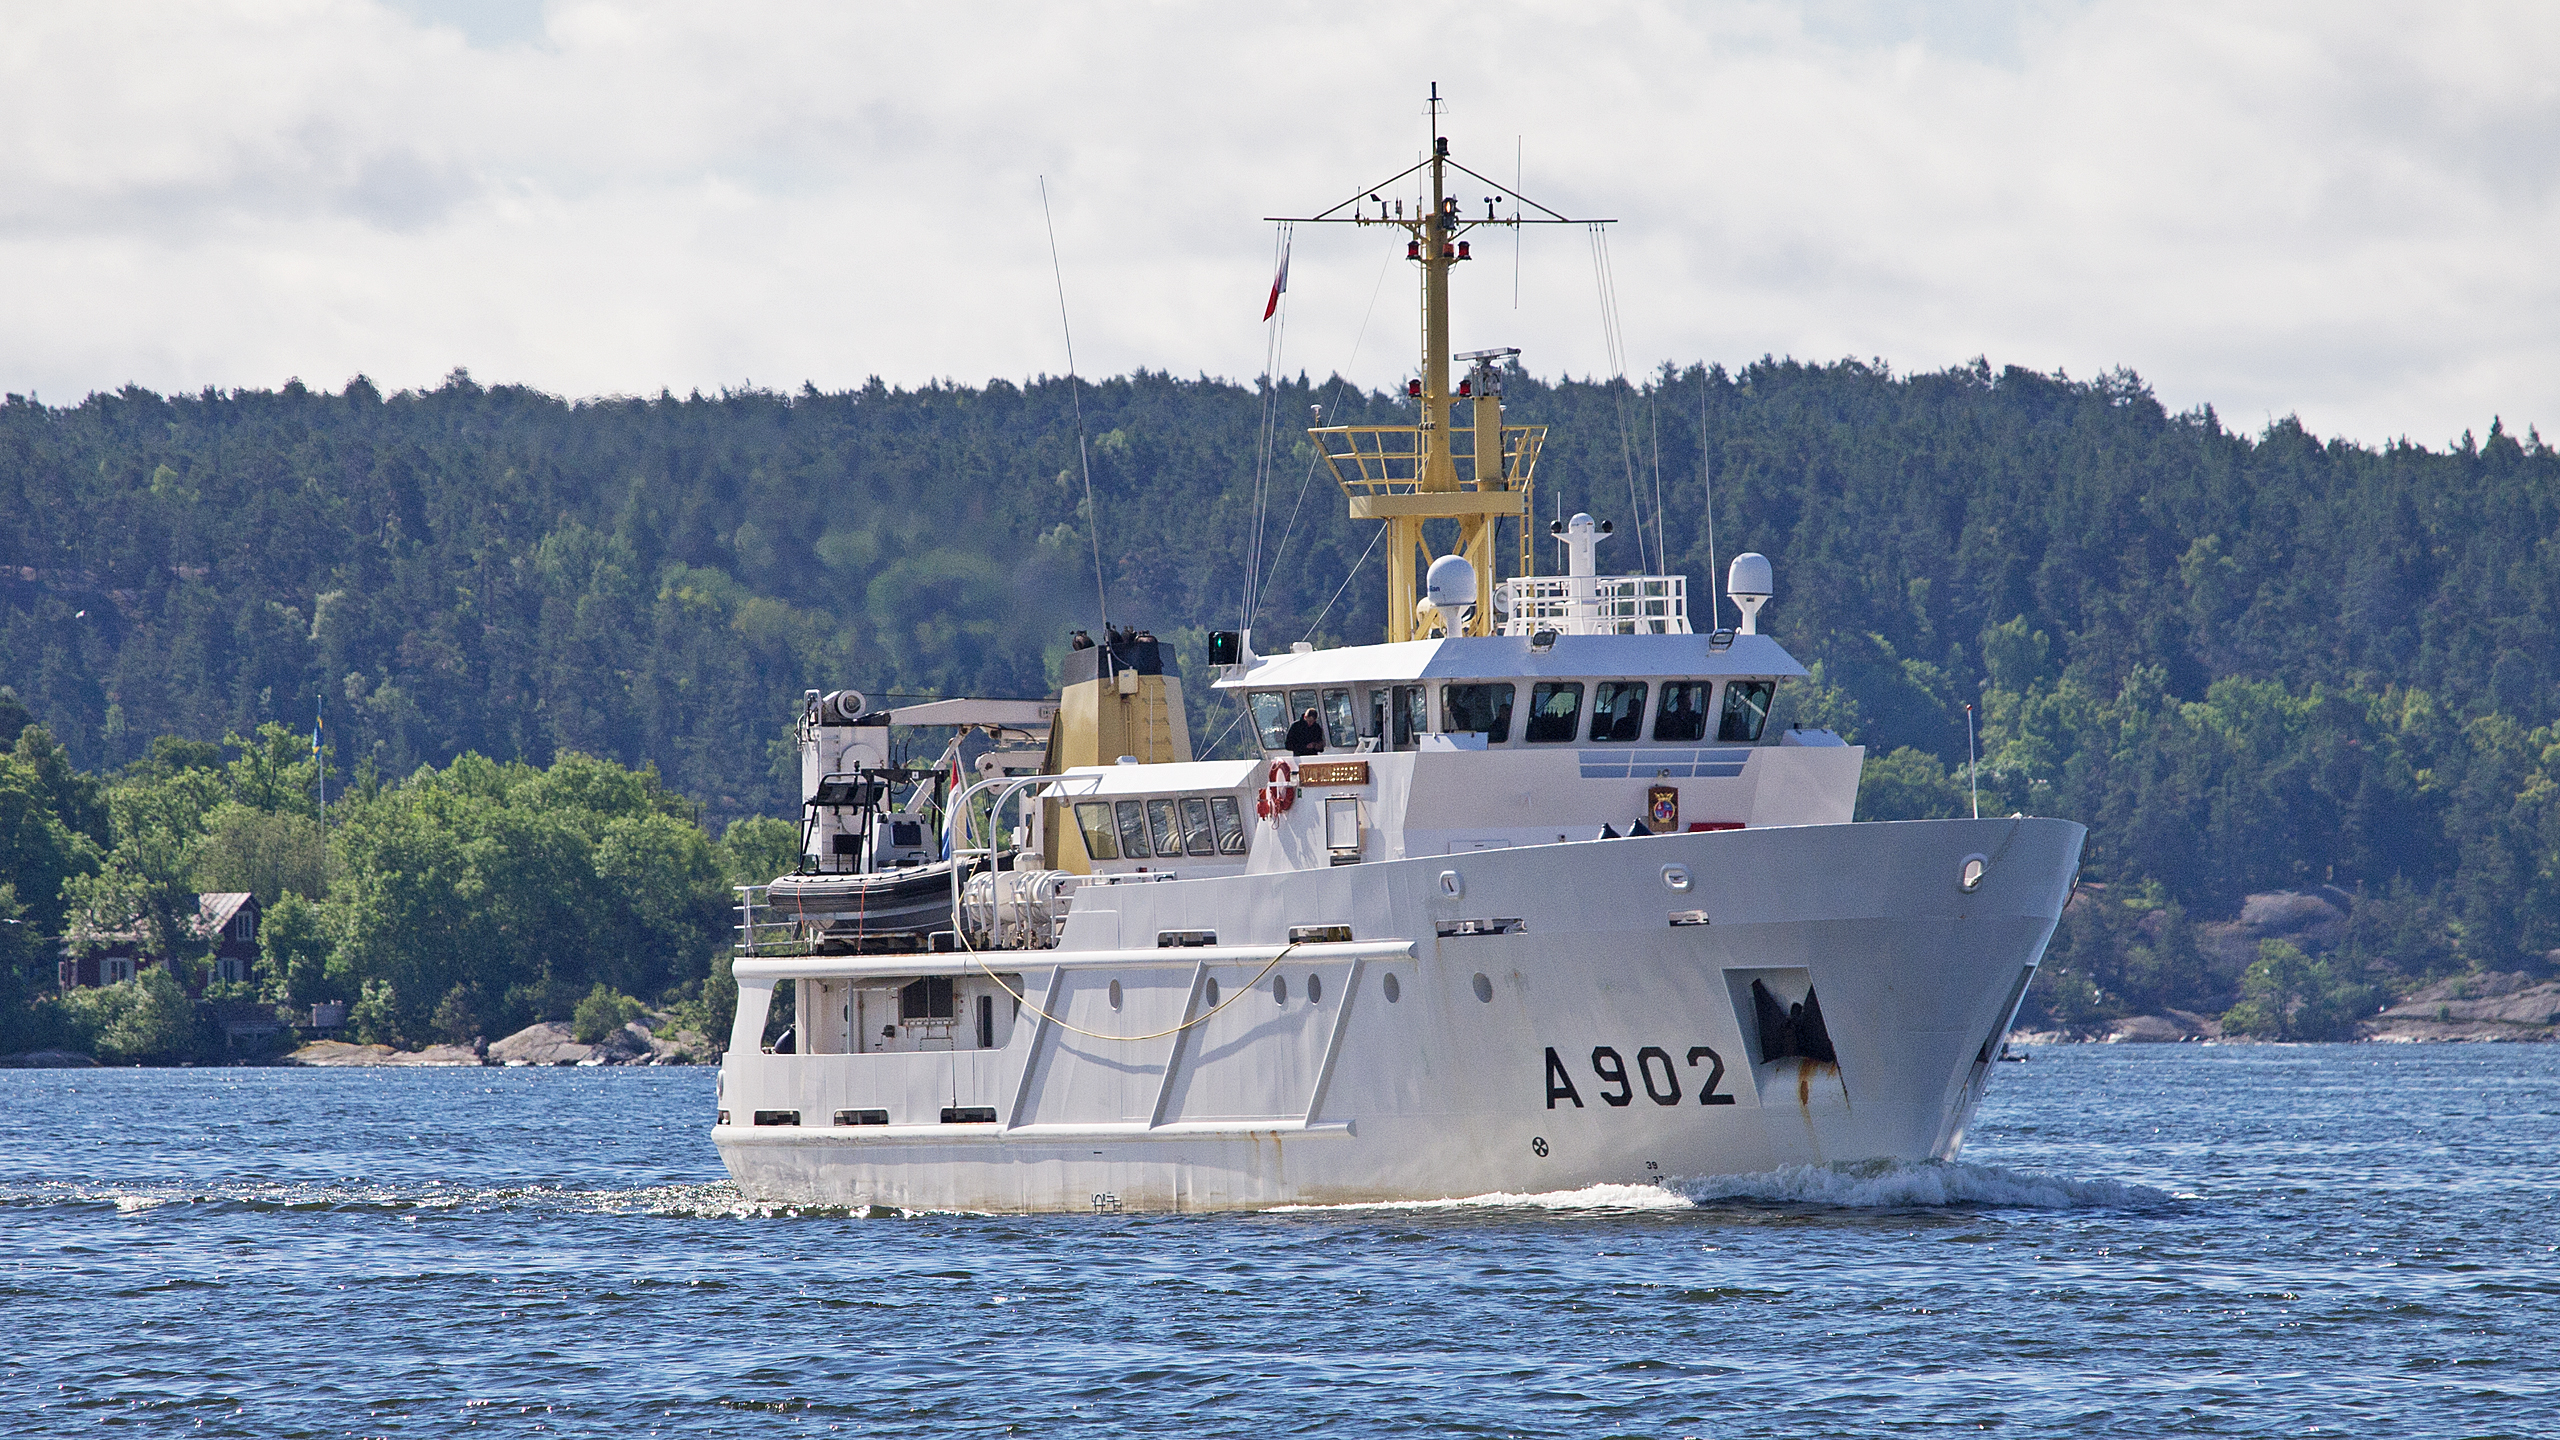 A902 VAN KINSBERGEN (training ship) 35223004120_03897546fd_o